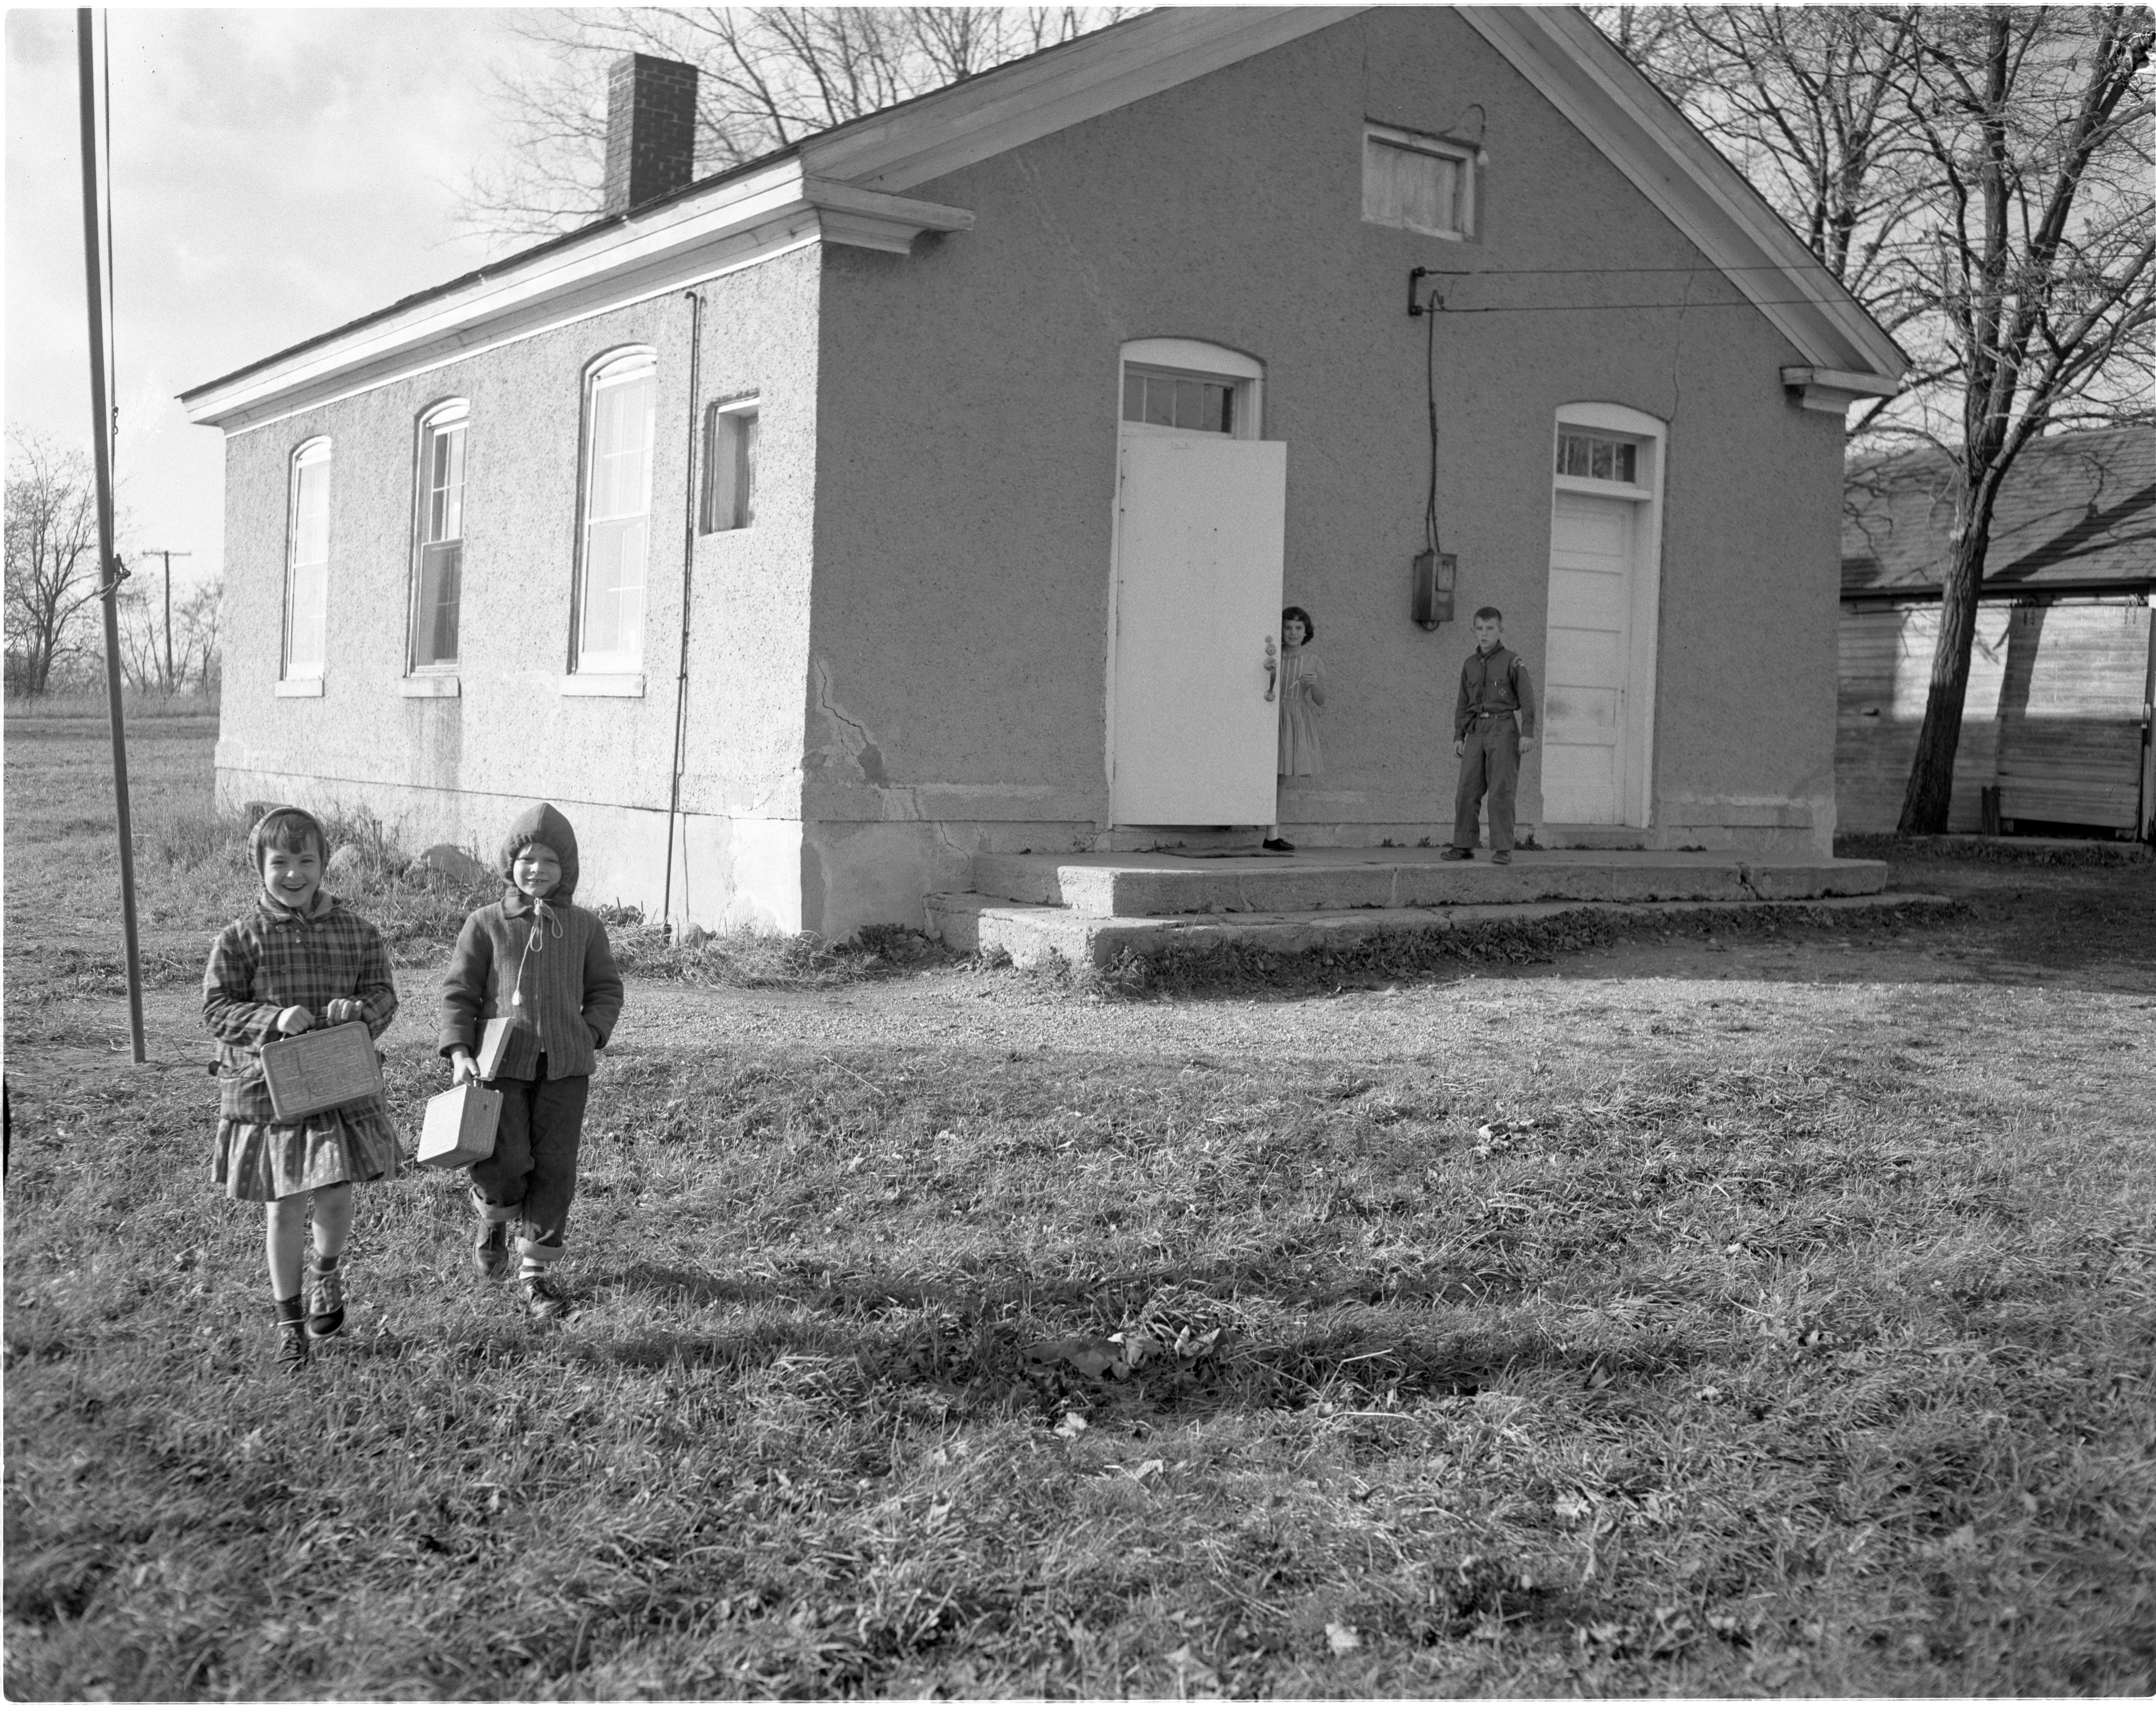 Students Outside Braun School, November 1960 image